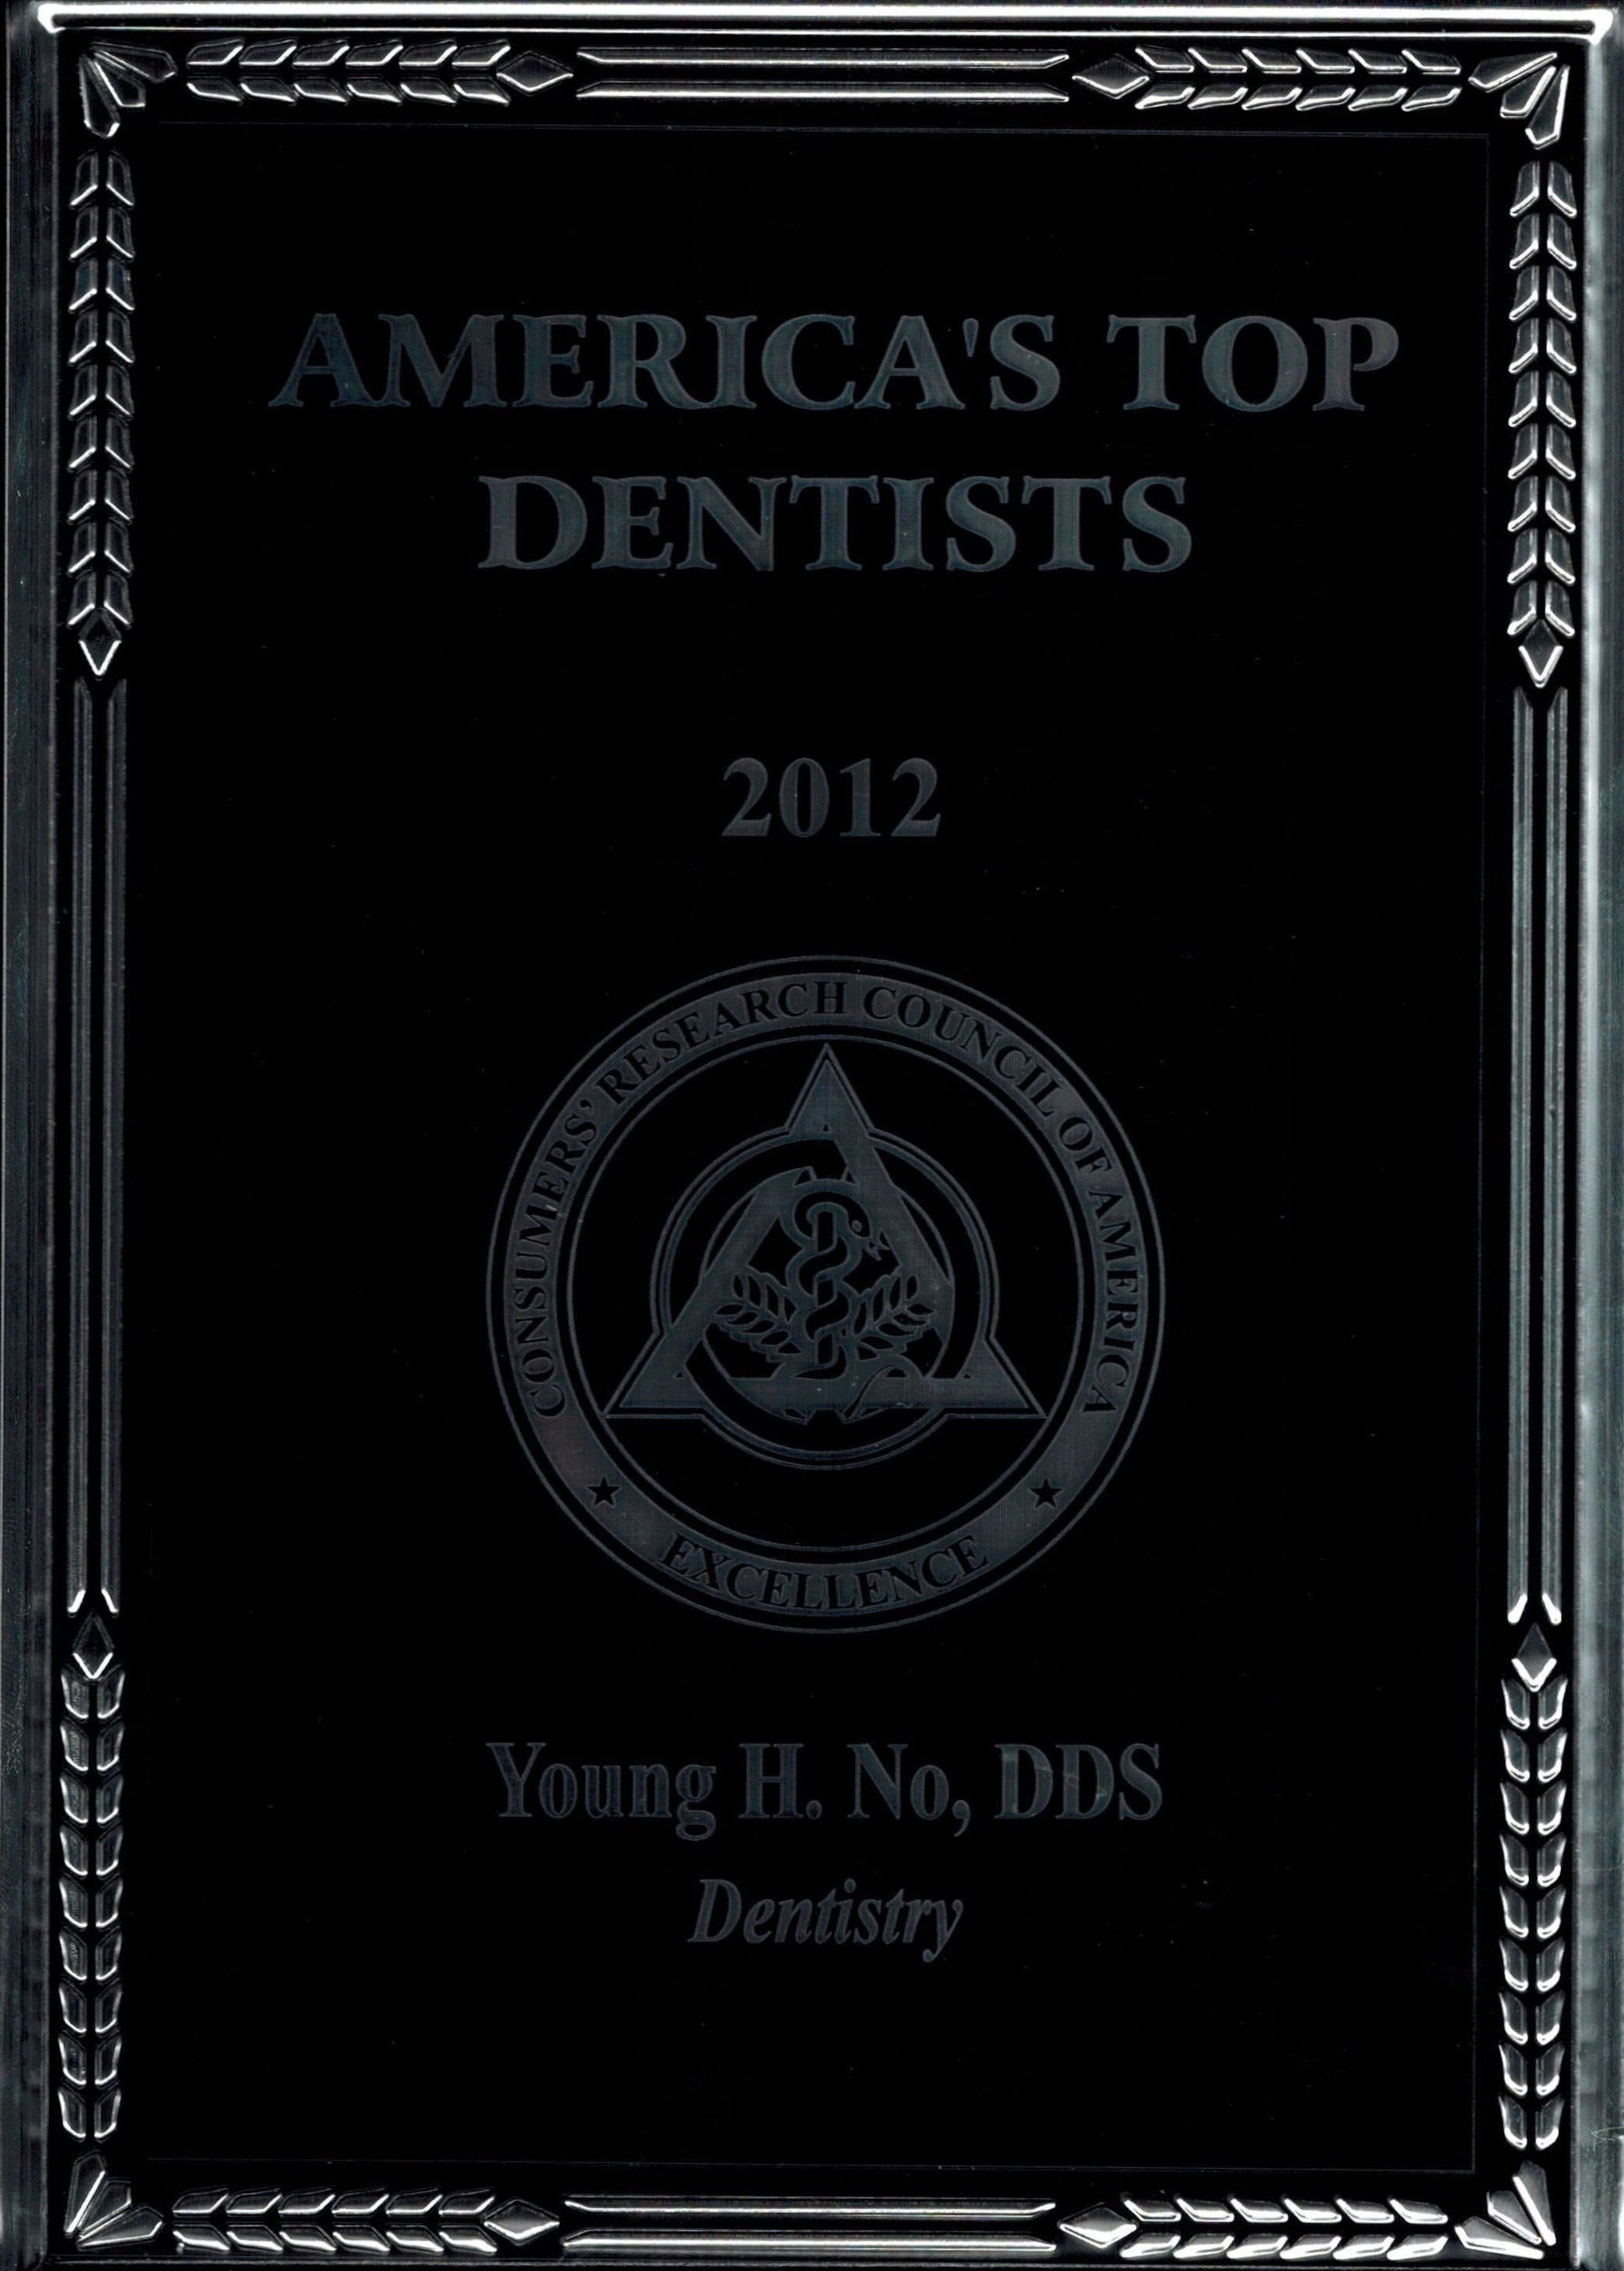 Top Dentist 2012